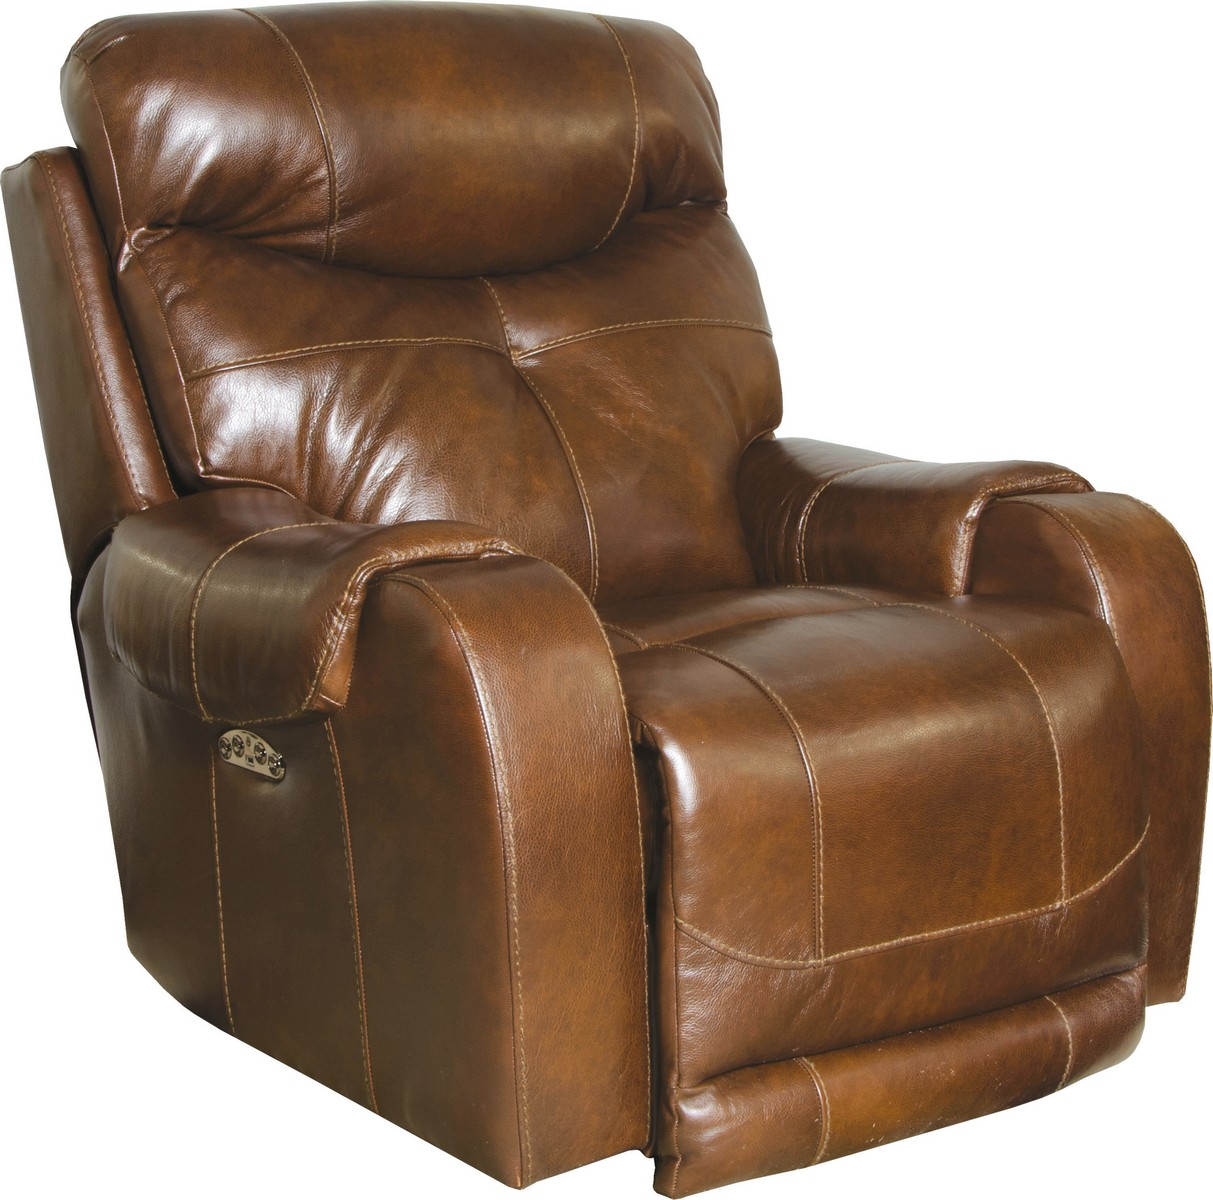 Catnapper Chair Catnapper Venice Top Grain Leather Touch Power Headrest